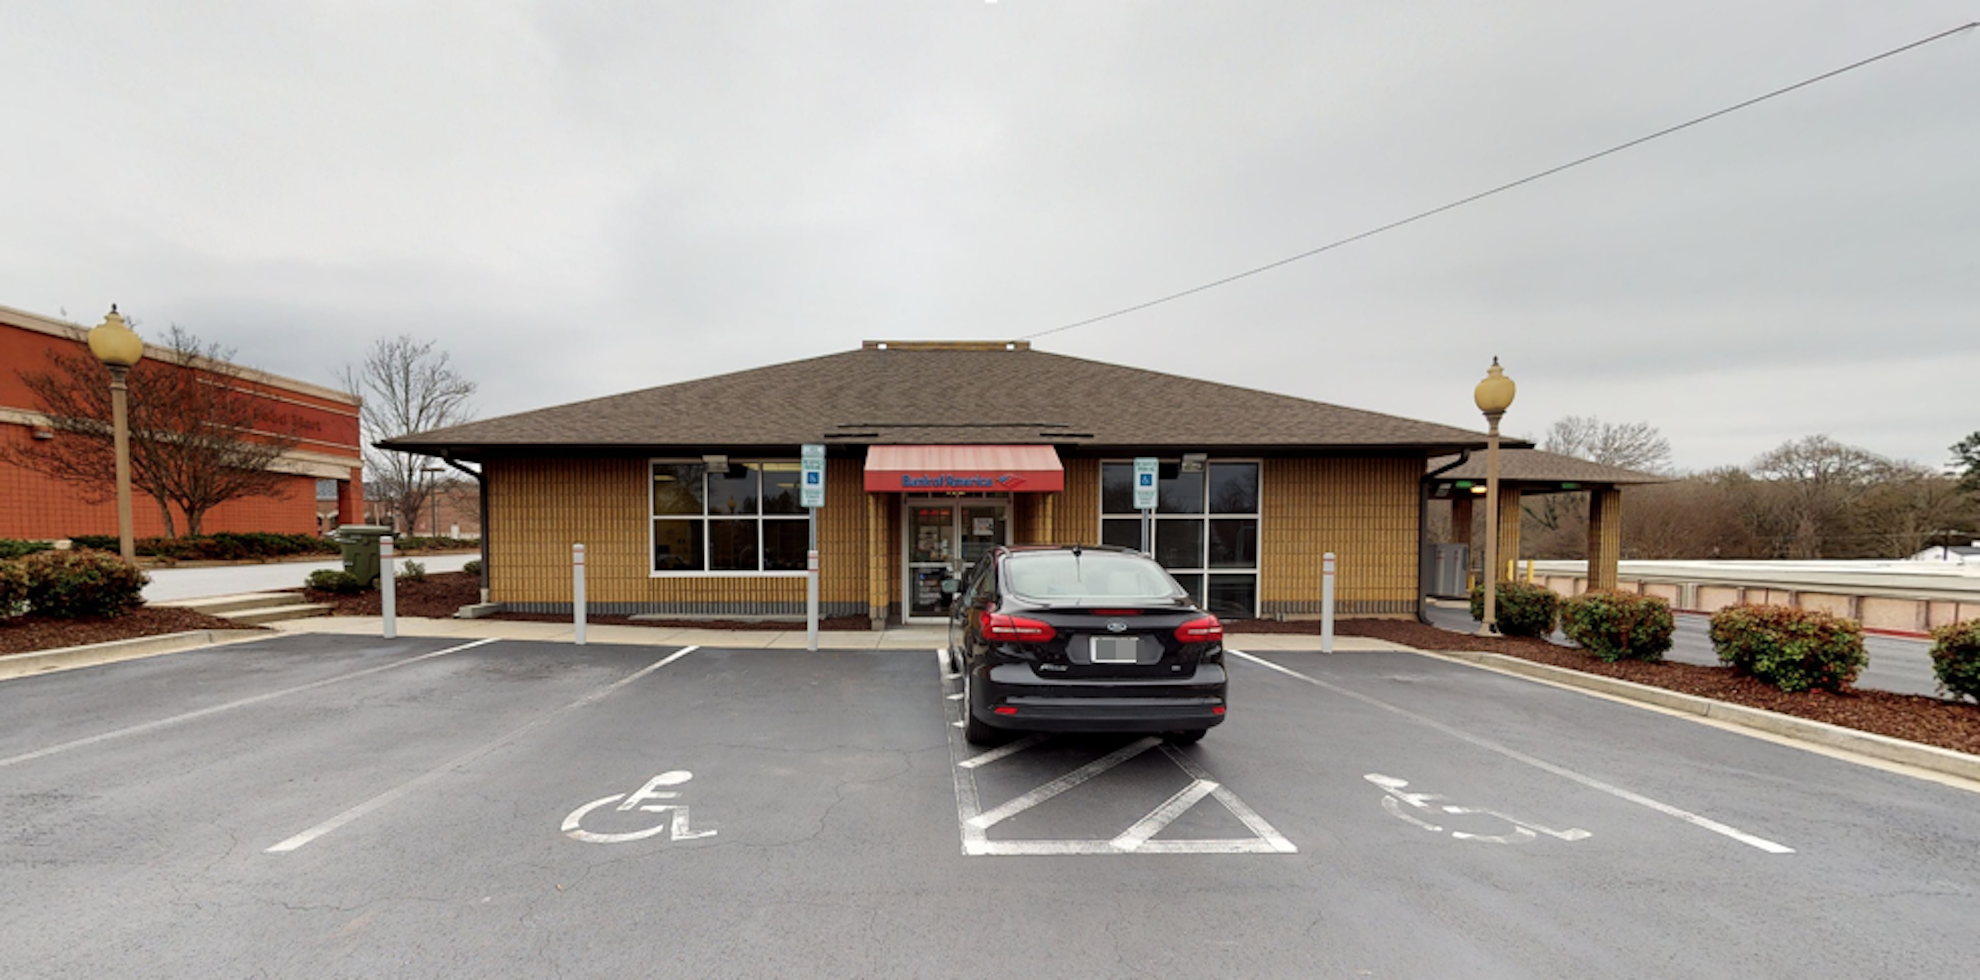 Bank of America financial center with drive-thru ATM | 521 College Ave, Clemson, SC 29631